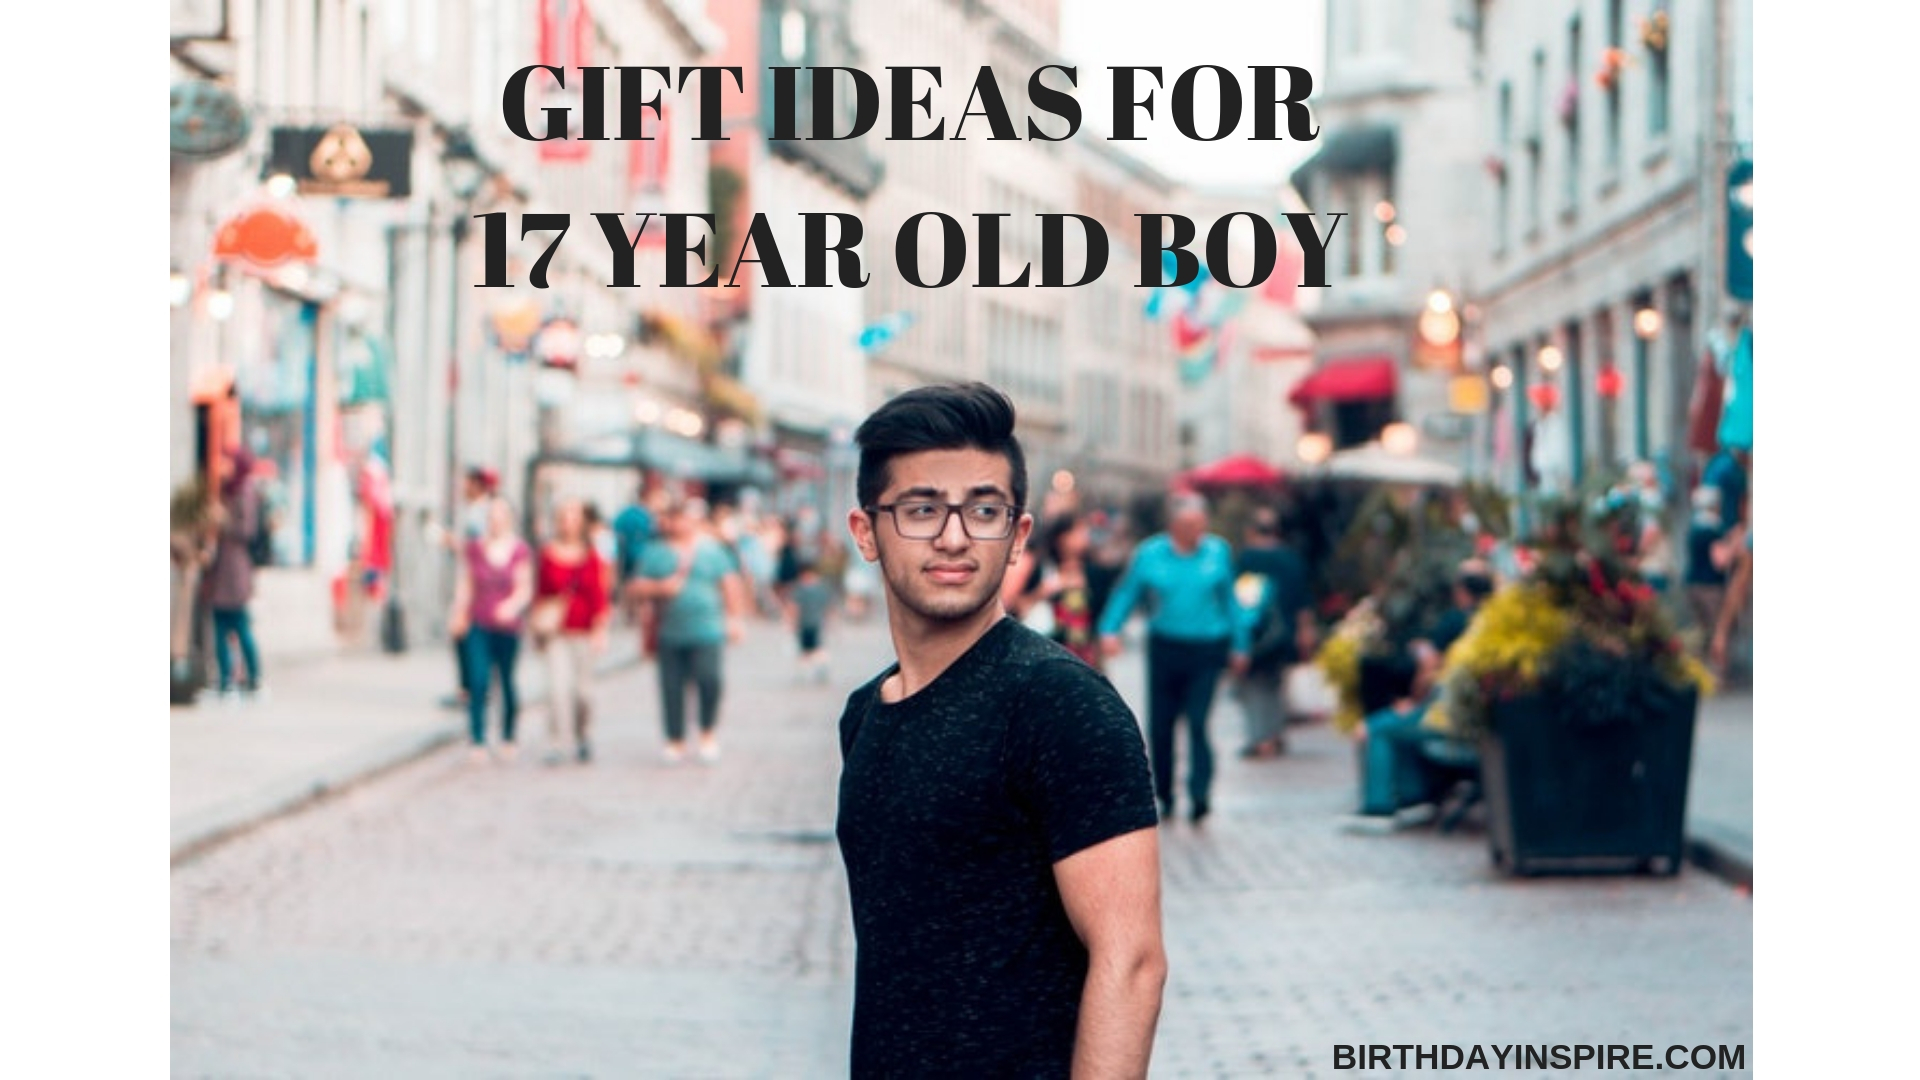 BIRTHDAY GIFT IDEAS FOR 17 YEAR OLD